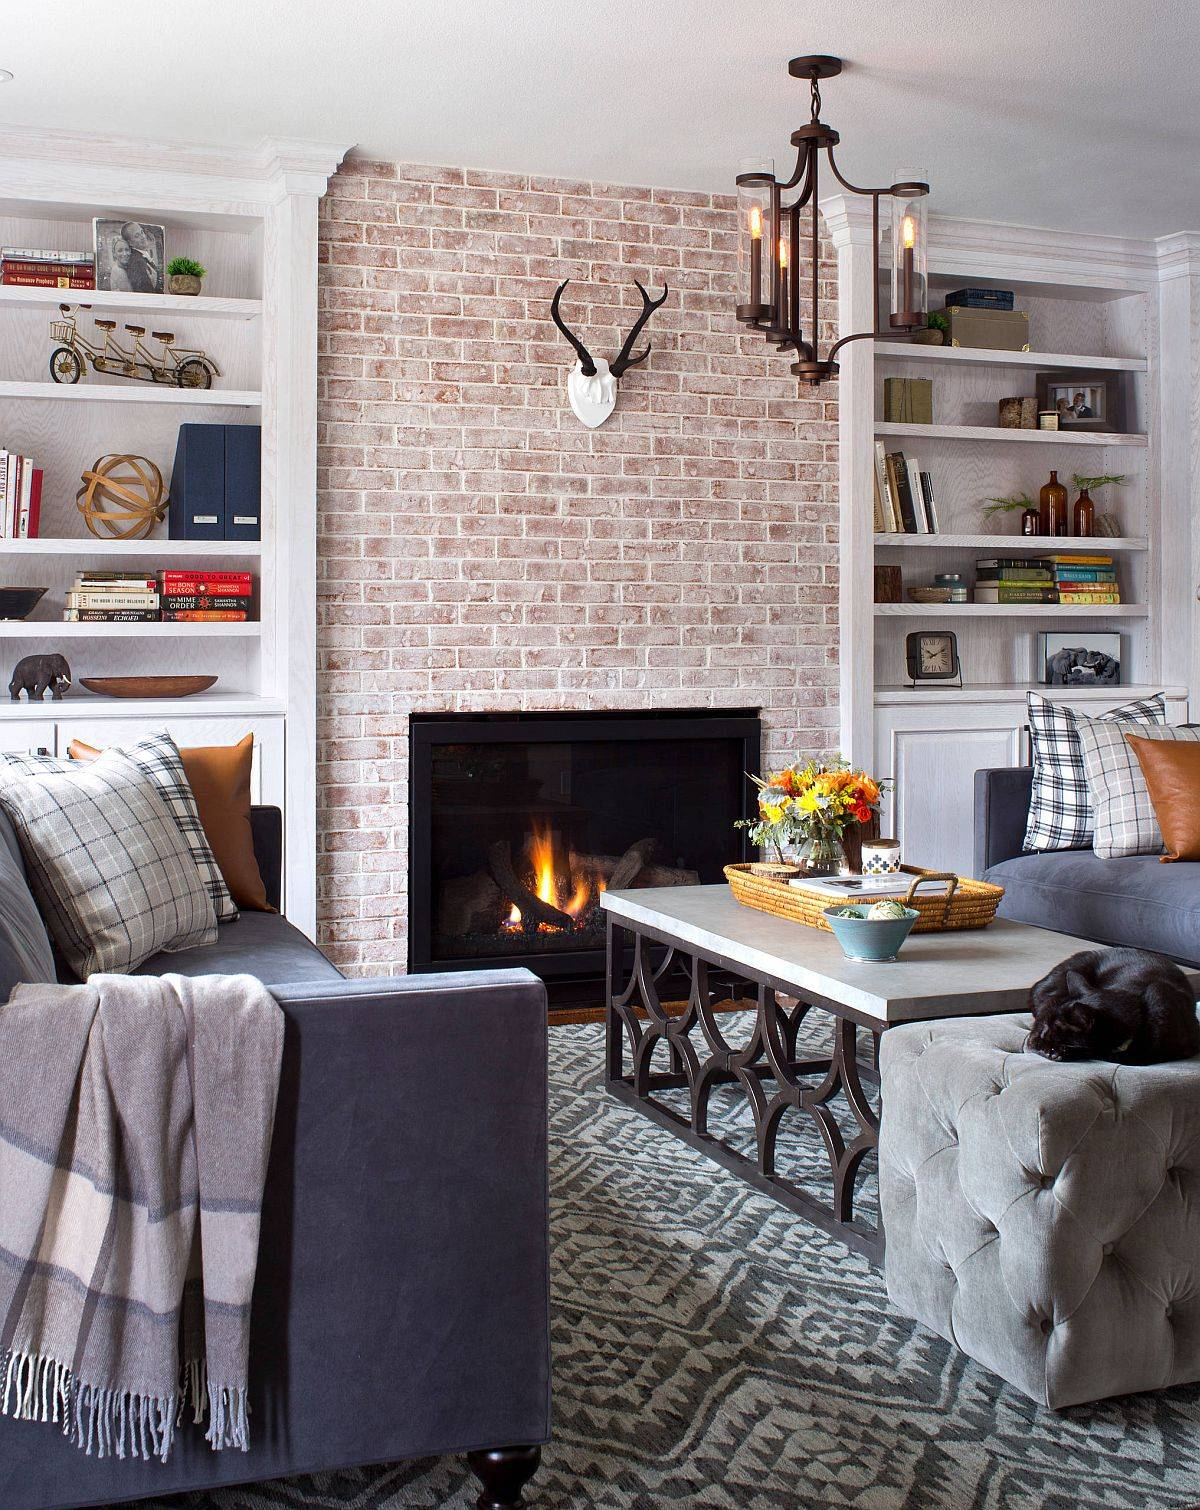 Modern-farmhouse-style-living-room-with-an-elegant-brick-section-and-fireplace-21723